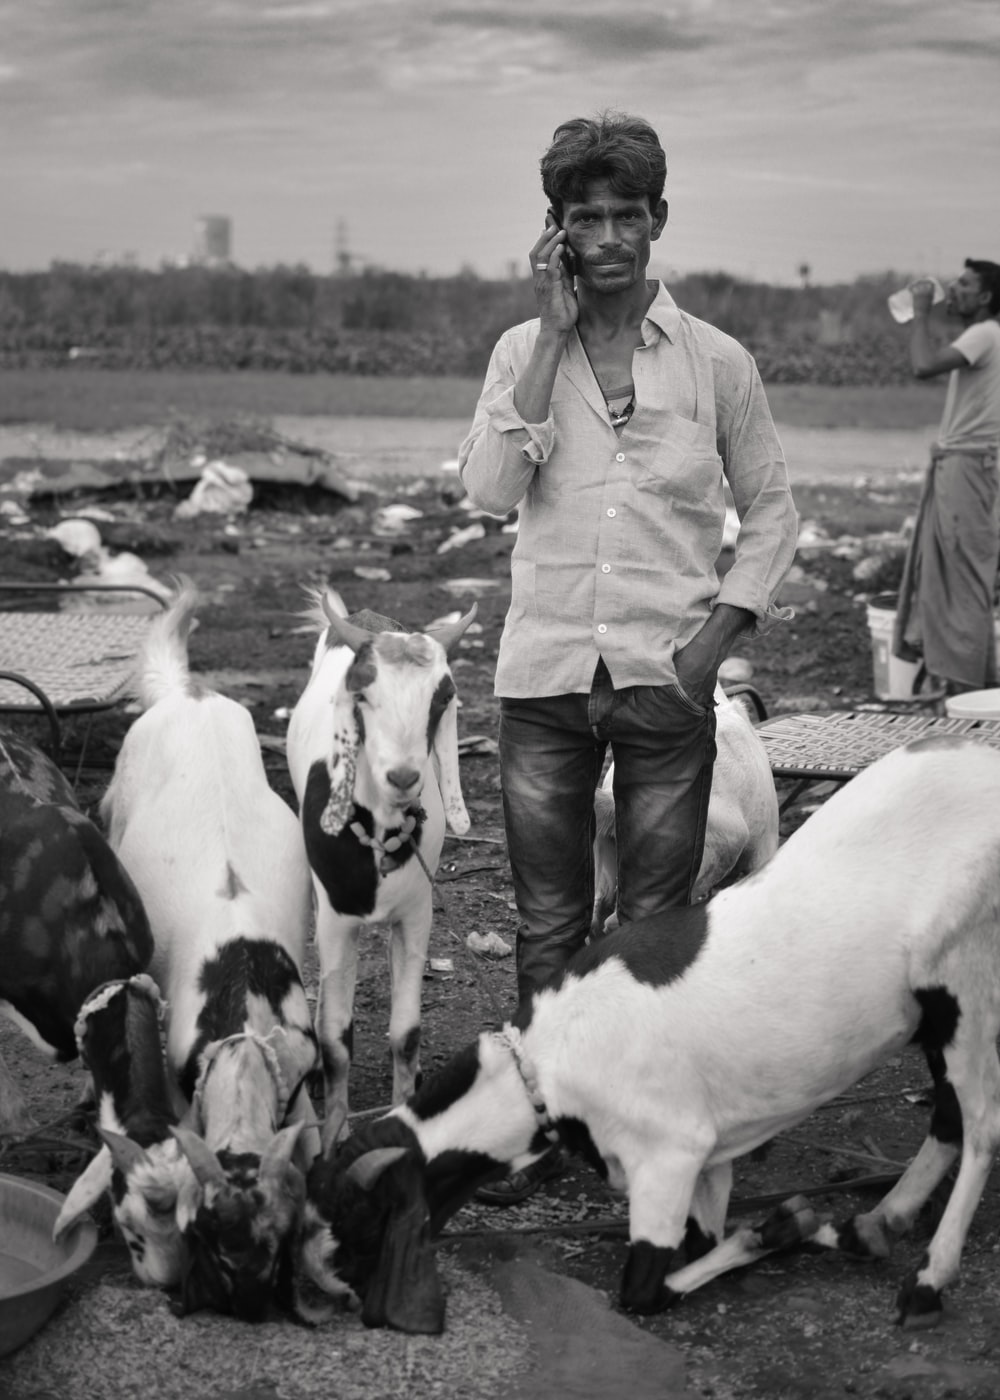 grayscale photo of man surrounded by goat